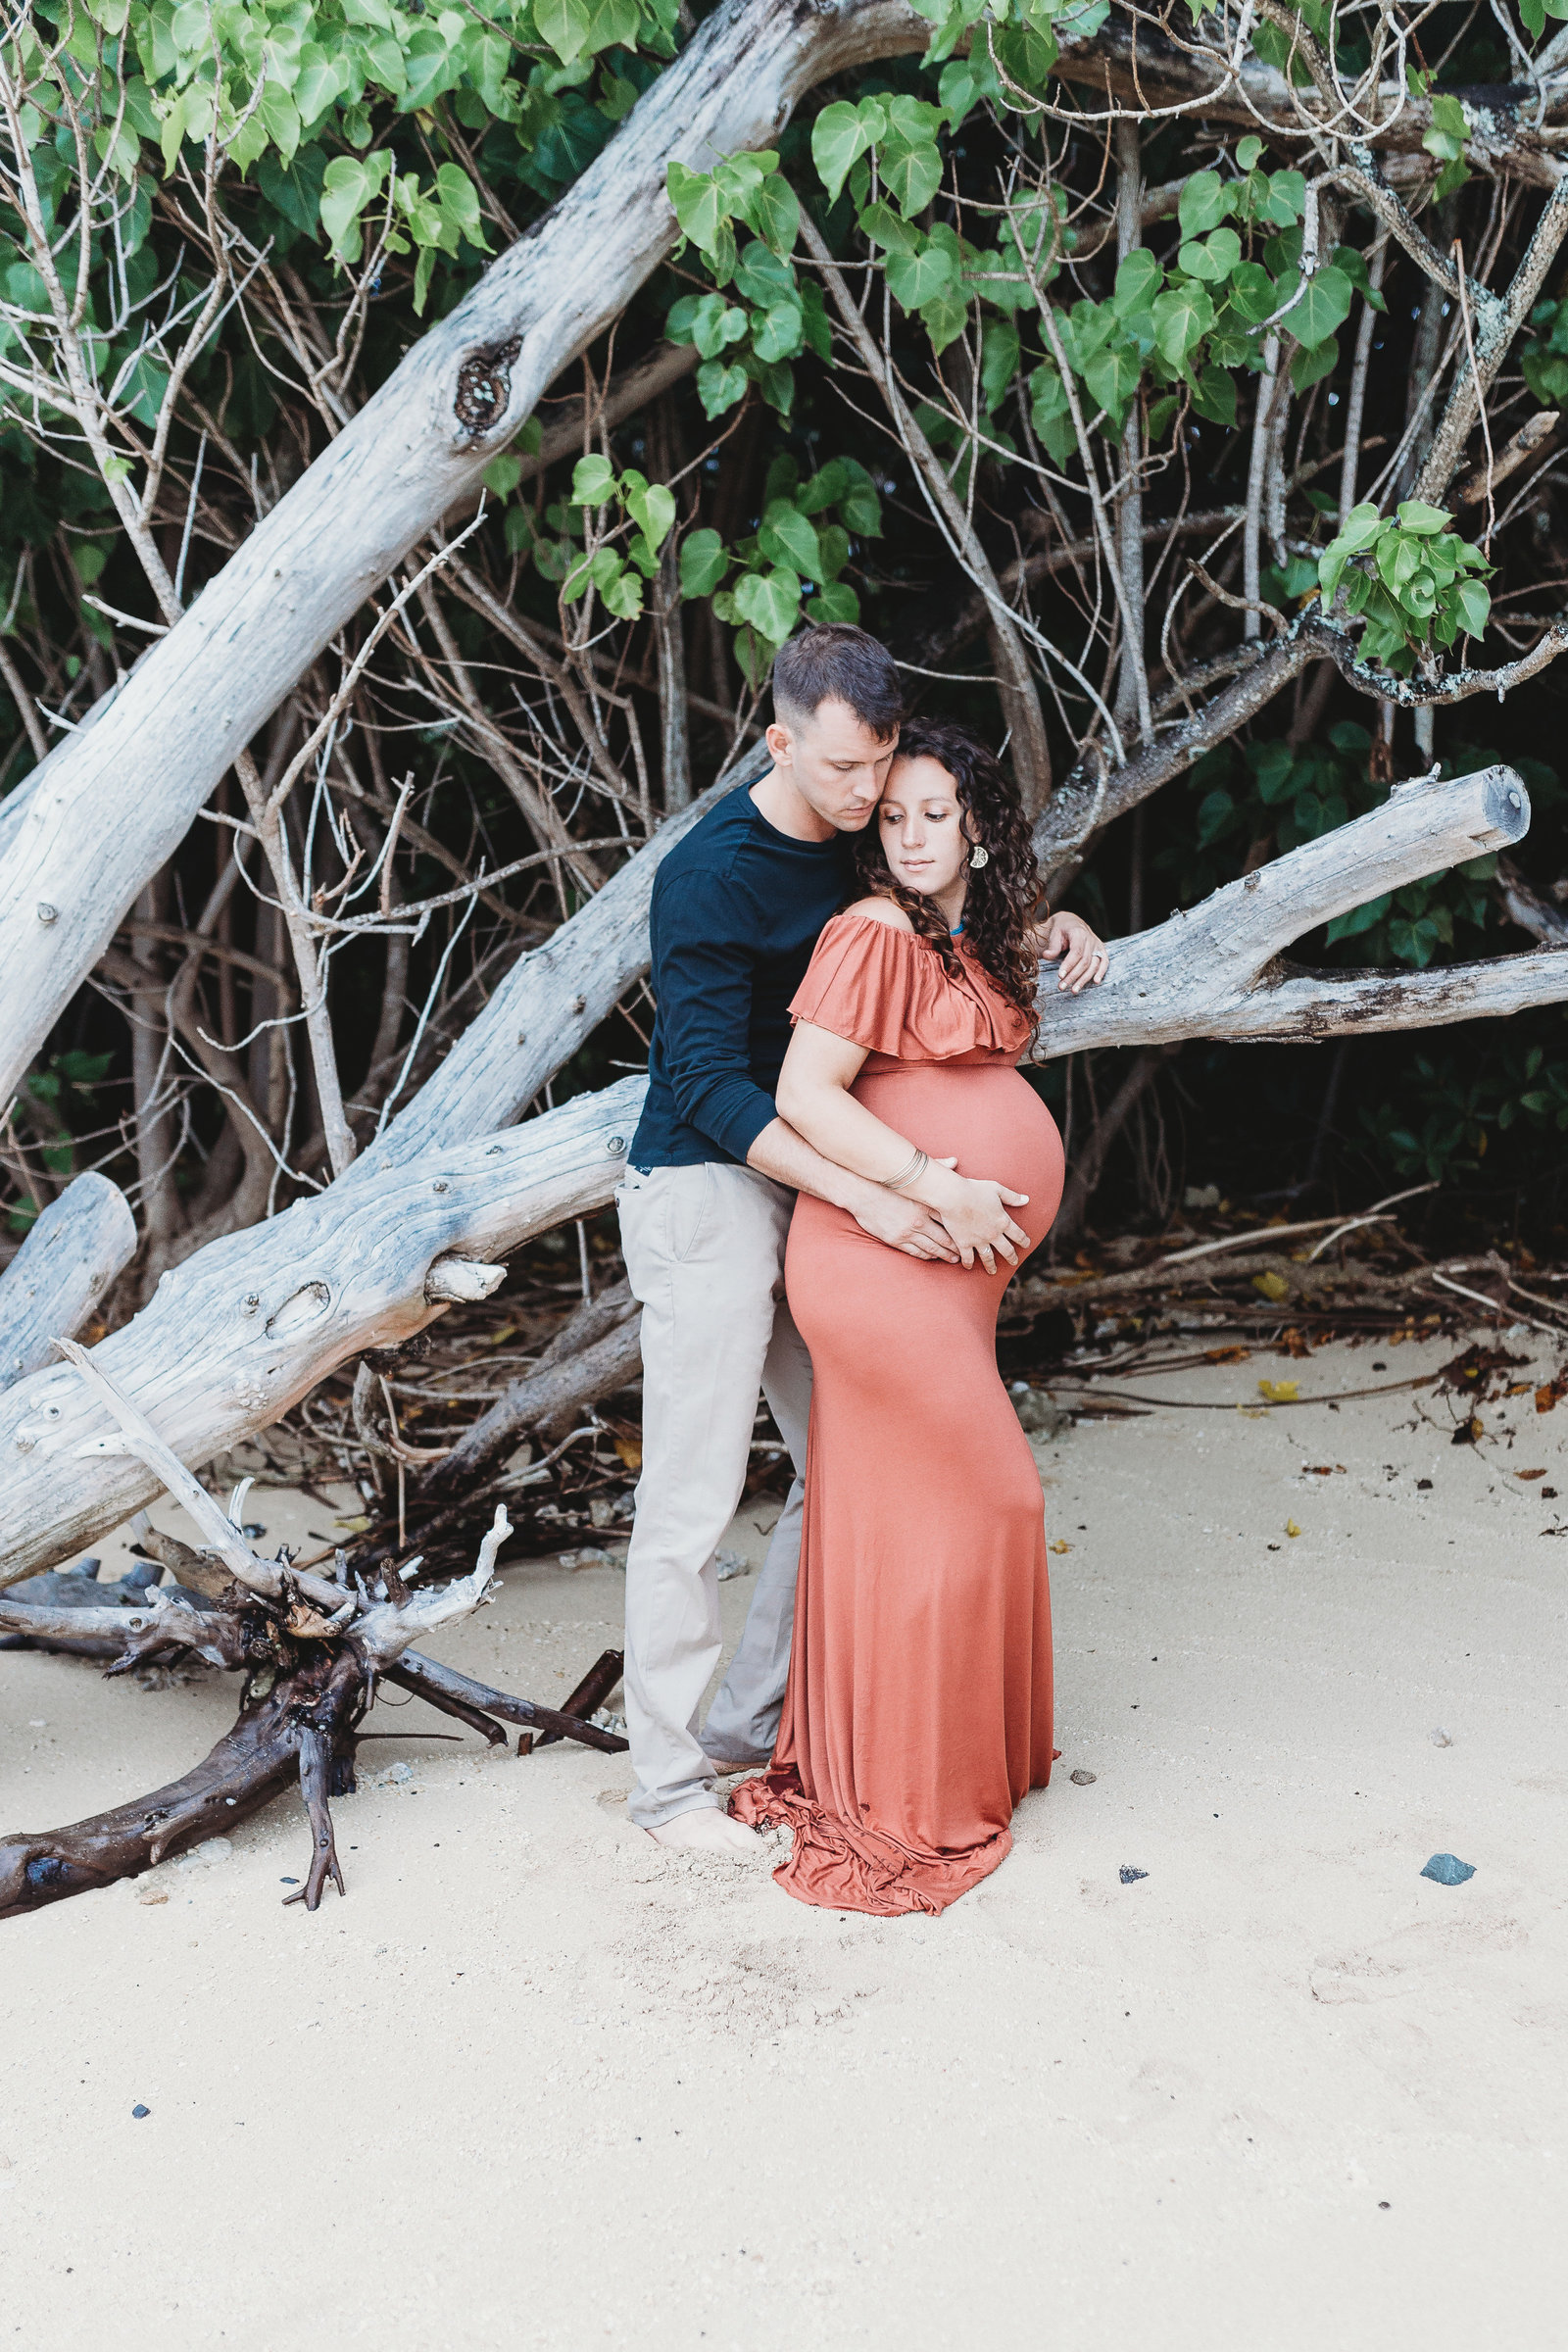 Couples Maternity Photography Shoot - Pregnant Couple on Beach - Honolulu, Oahu, Hawaii - Brooke Flanagan Maternity Photographer